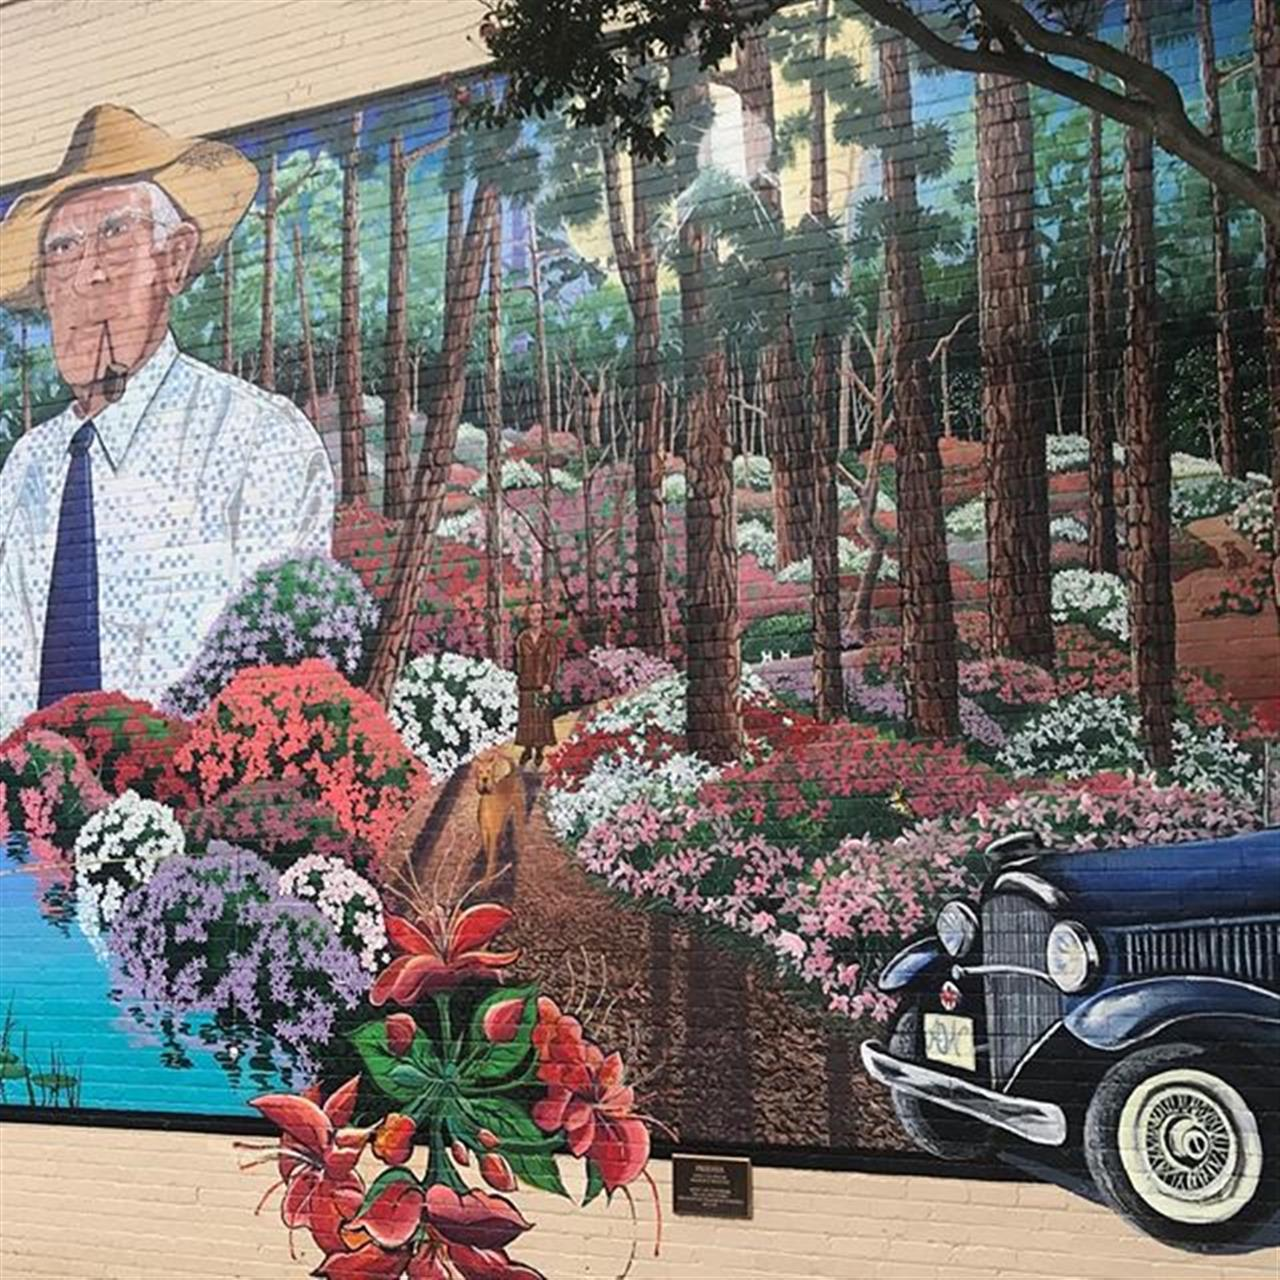 One of our murals reflecting our town's history. #leadingrelocal #pinemountainga